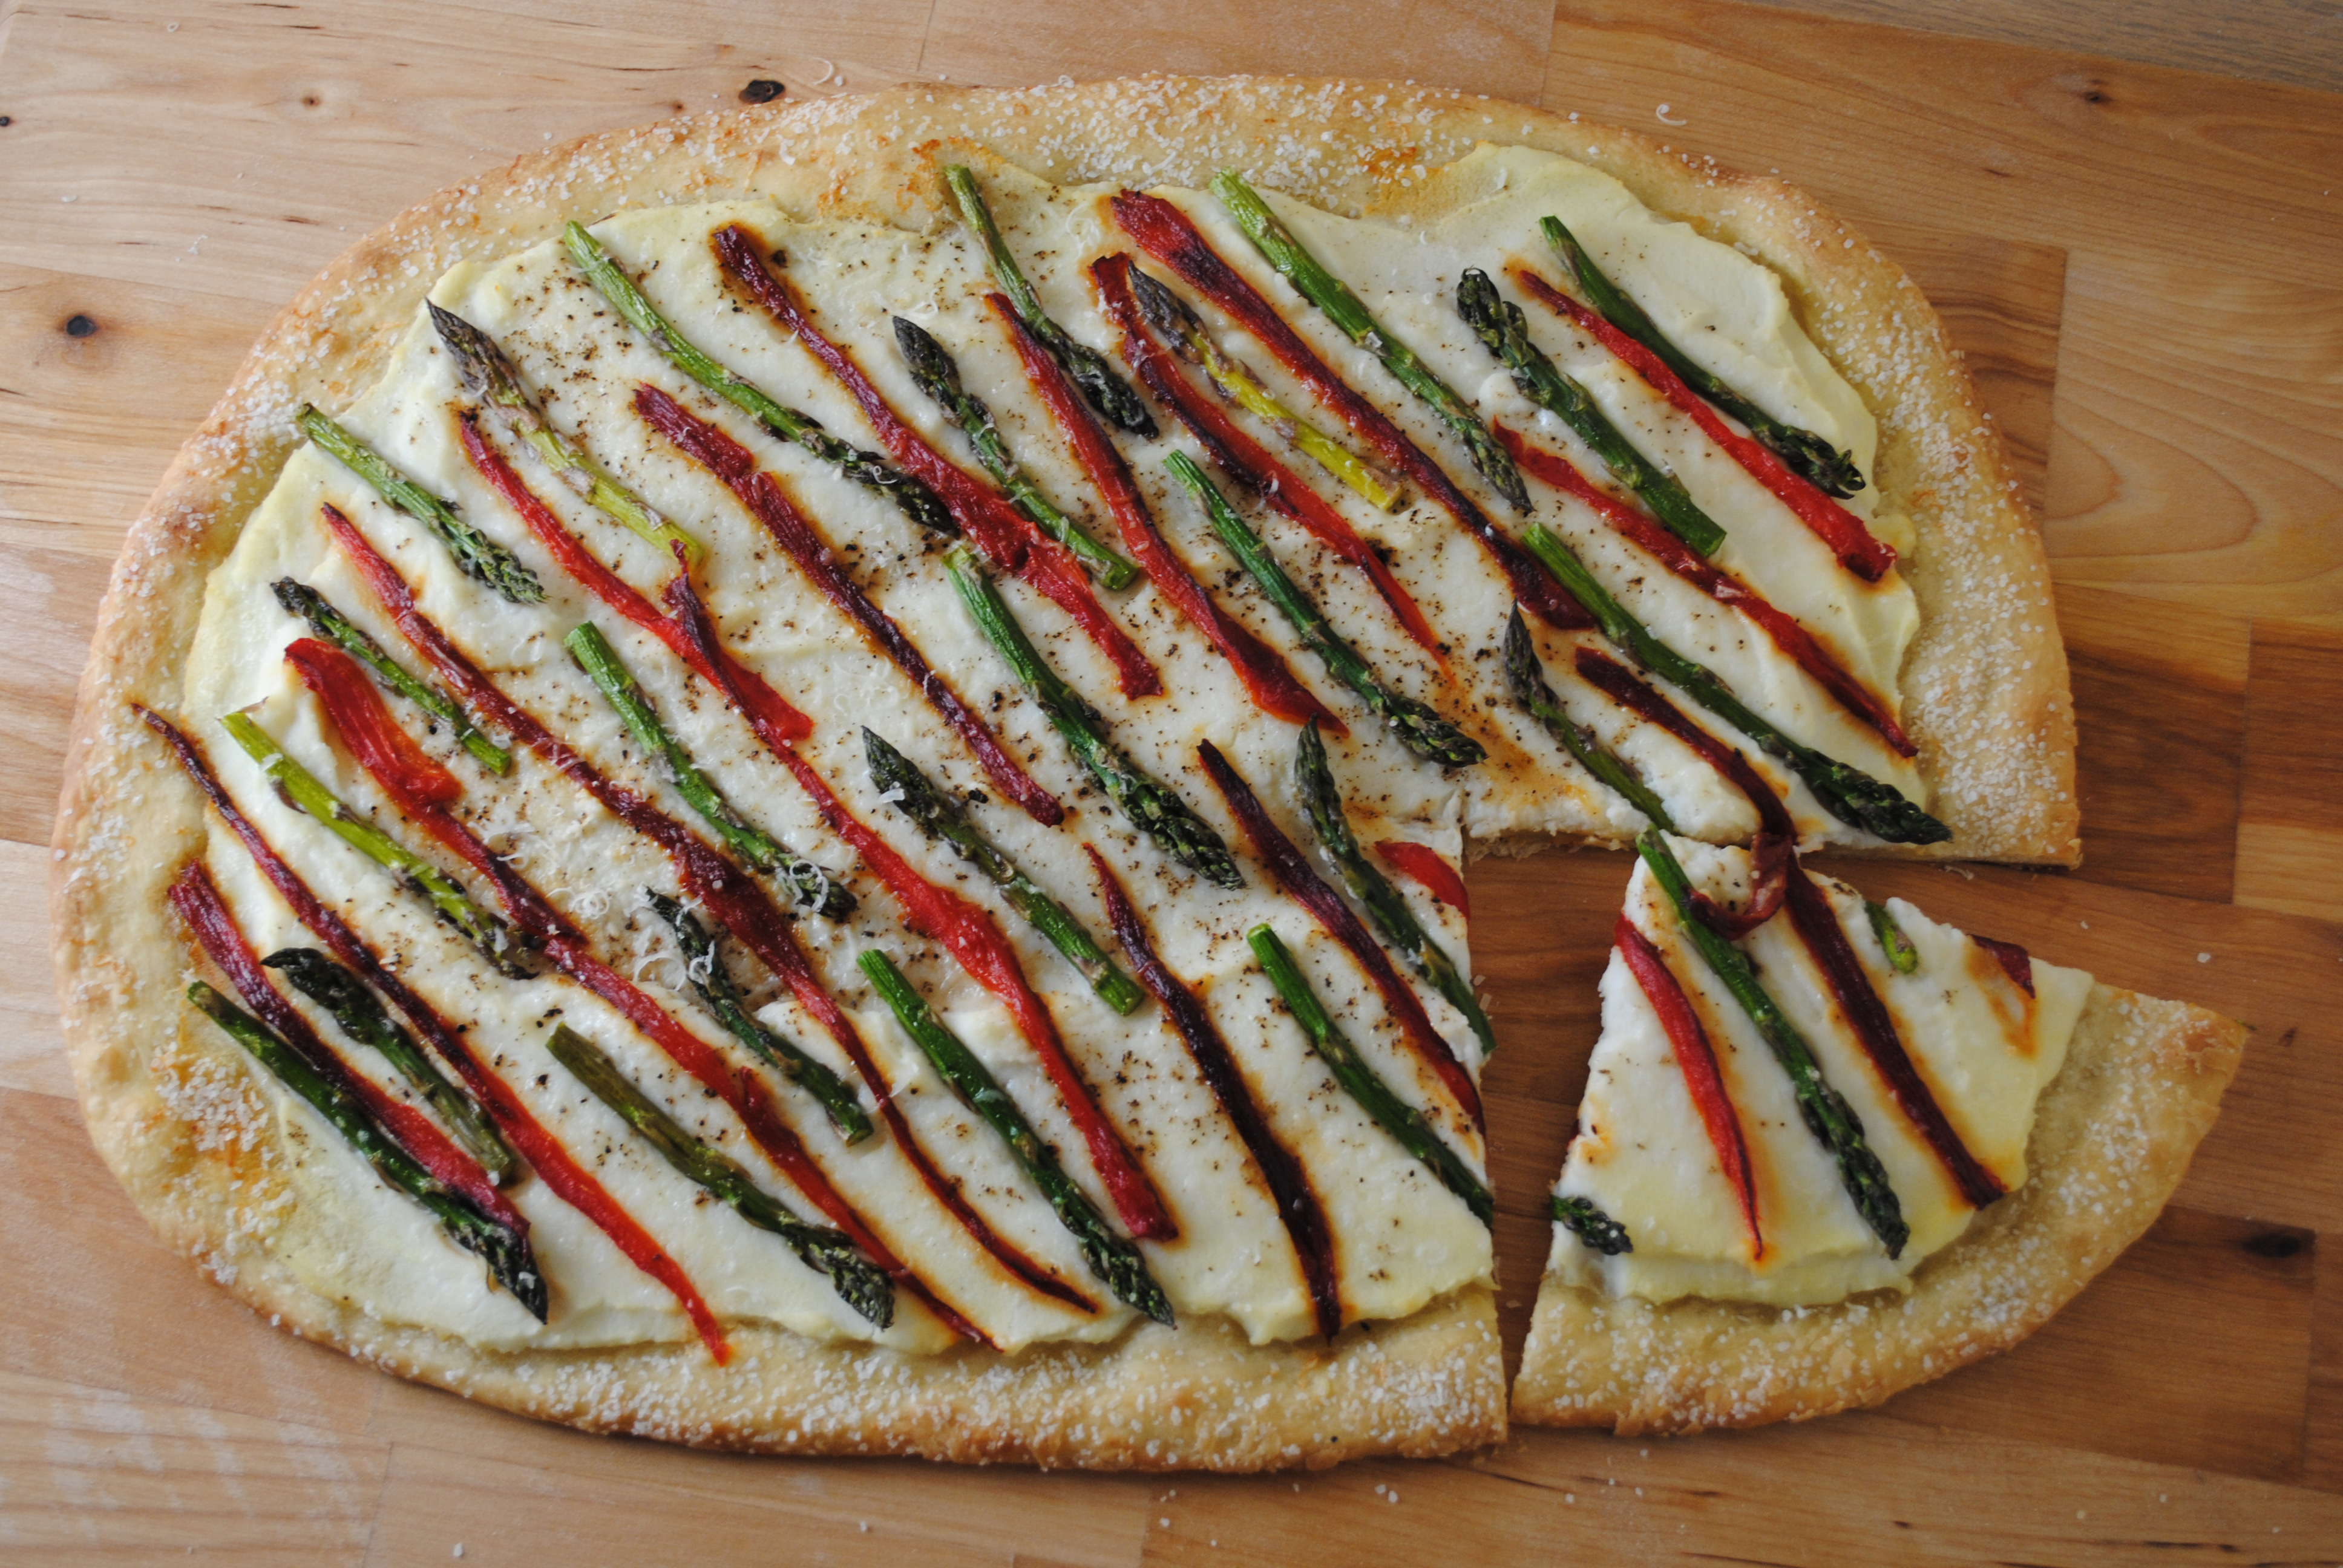 and ricotta grilled asparagus and ricotta ricotta grilled pizza